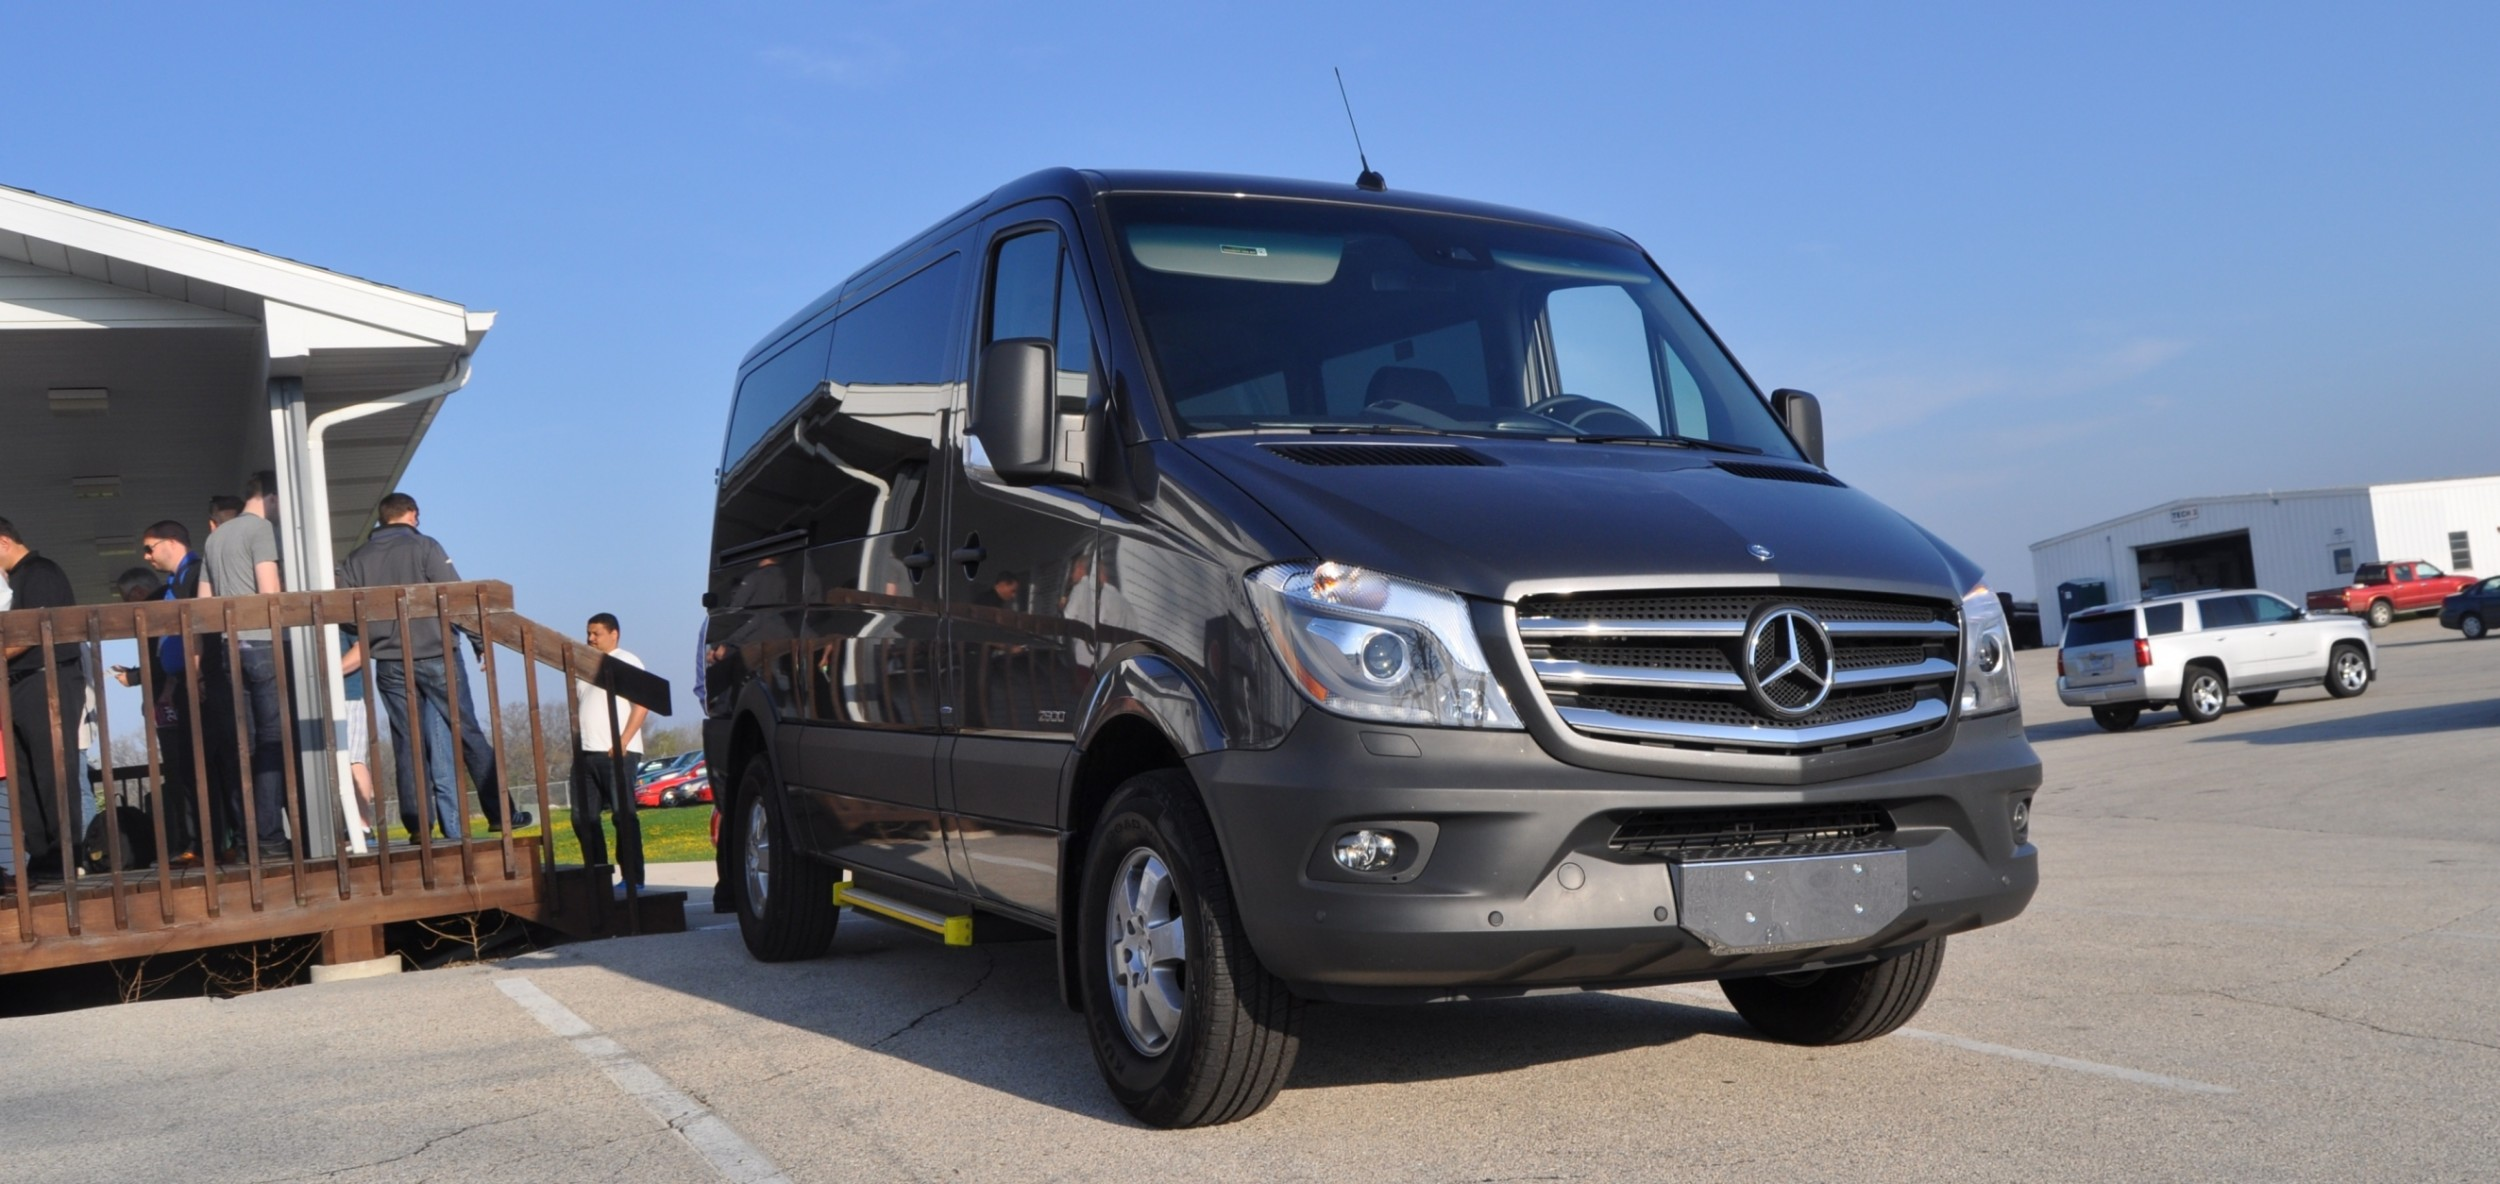 New 2014 mercedes benz sprinter vans in real life 2015 4x4 for 2014 mercedes benz sprinter cargo van